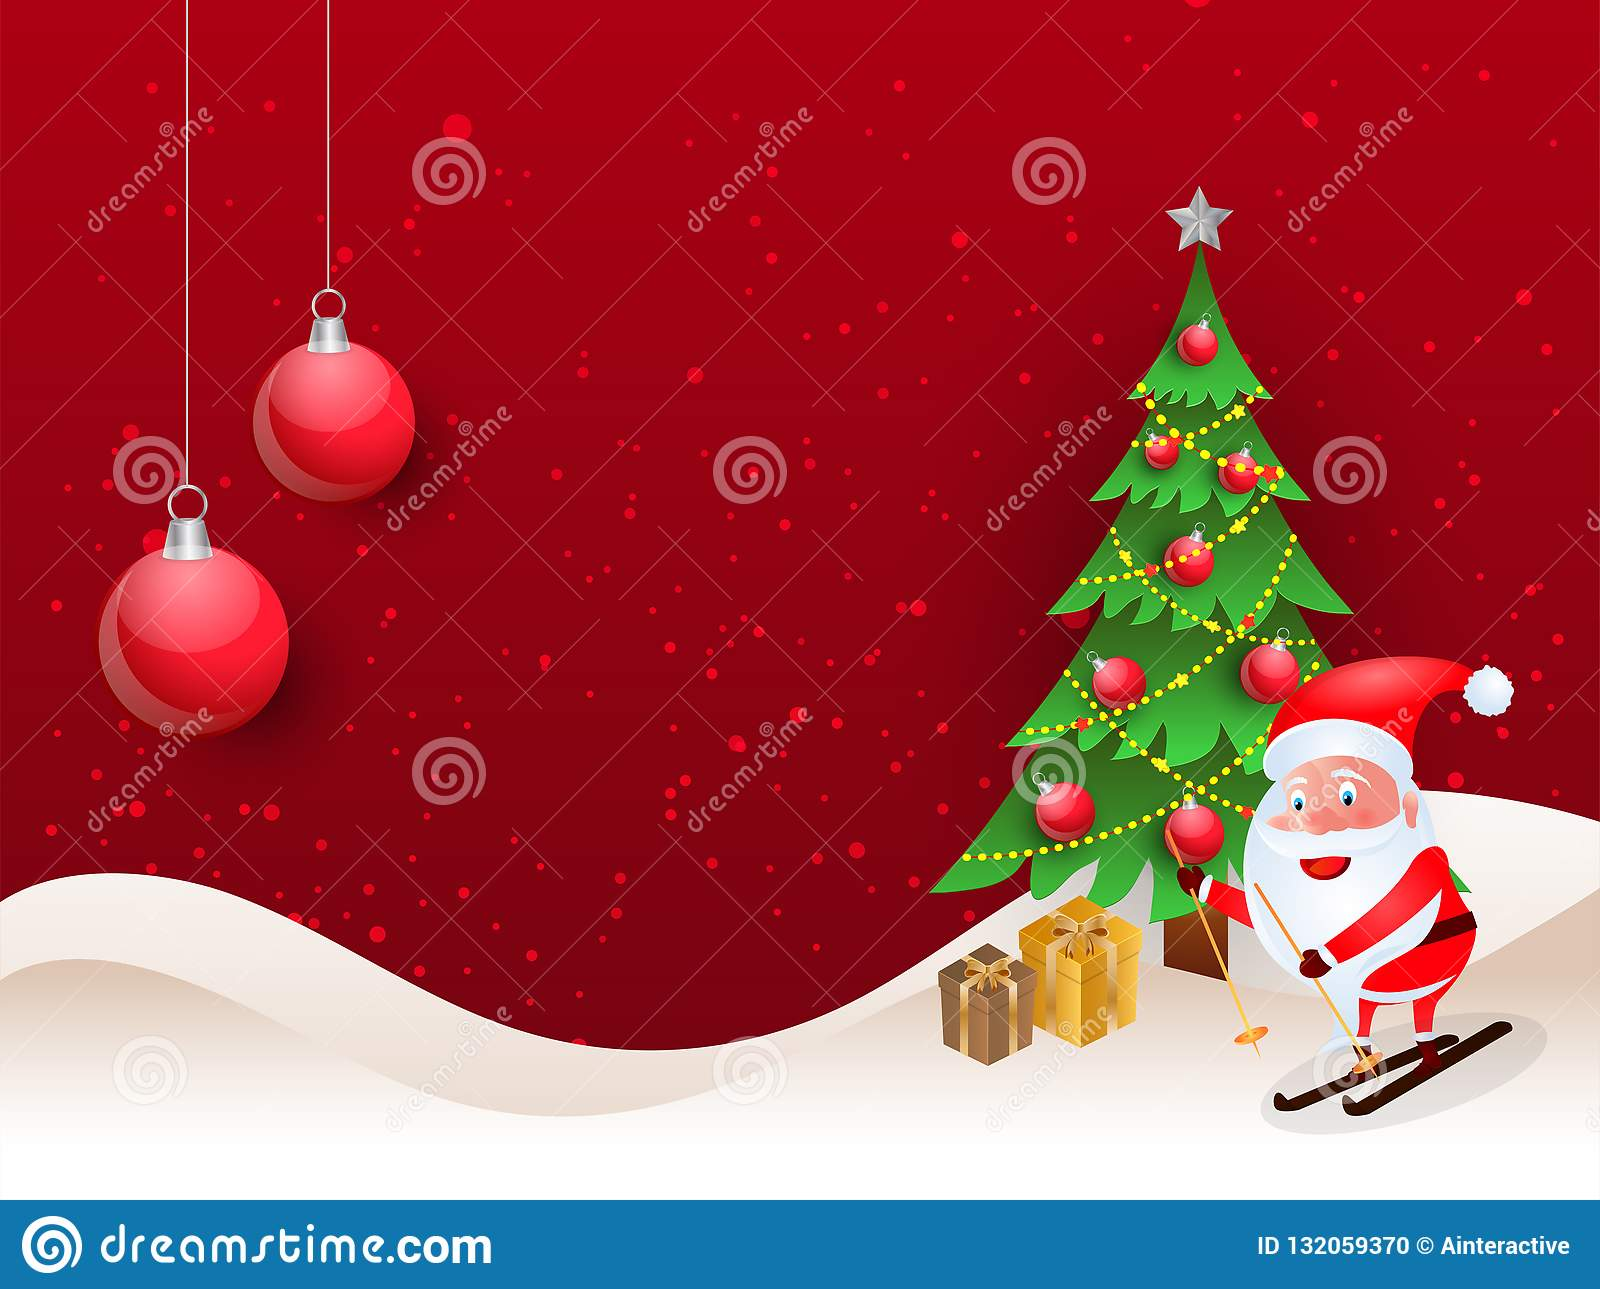 Merry Christmas Background With Cute Santa Clause Riding On